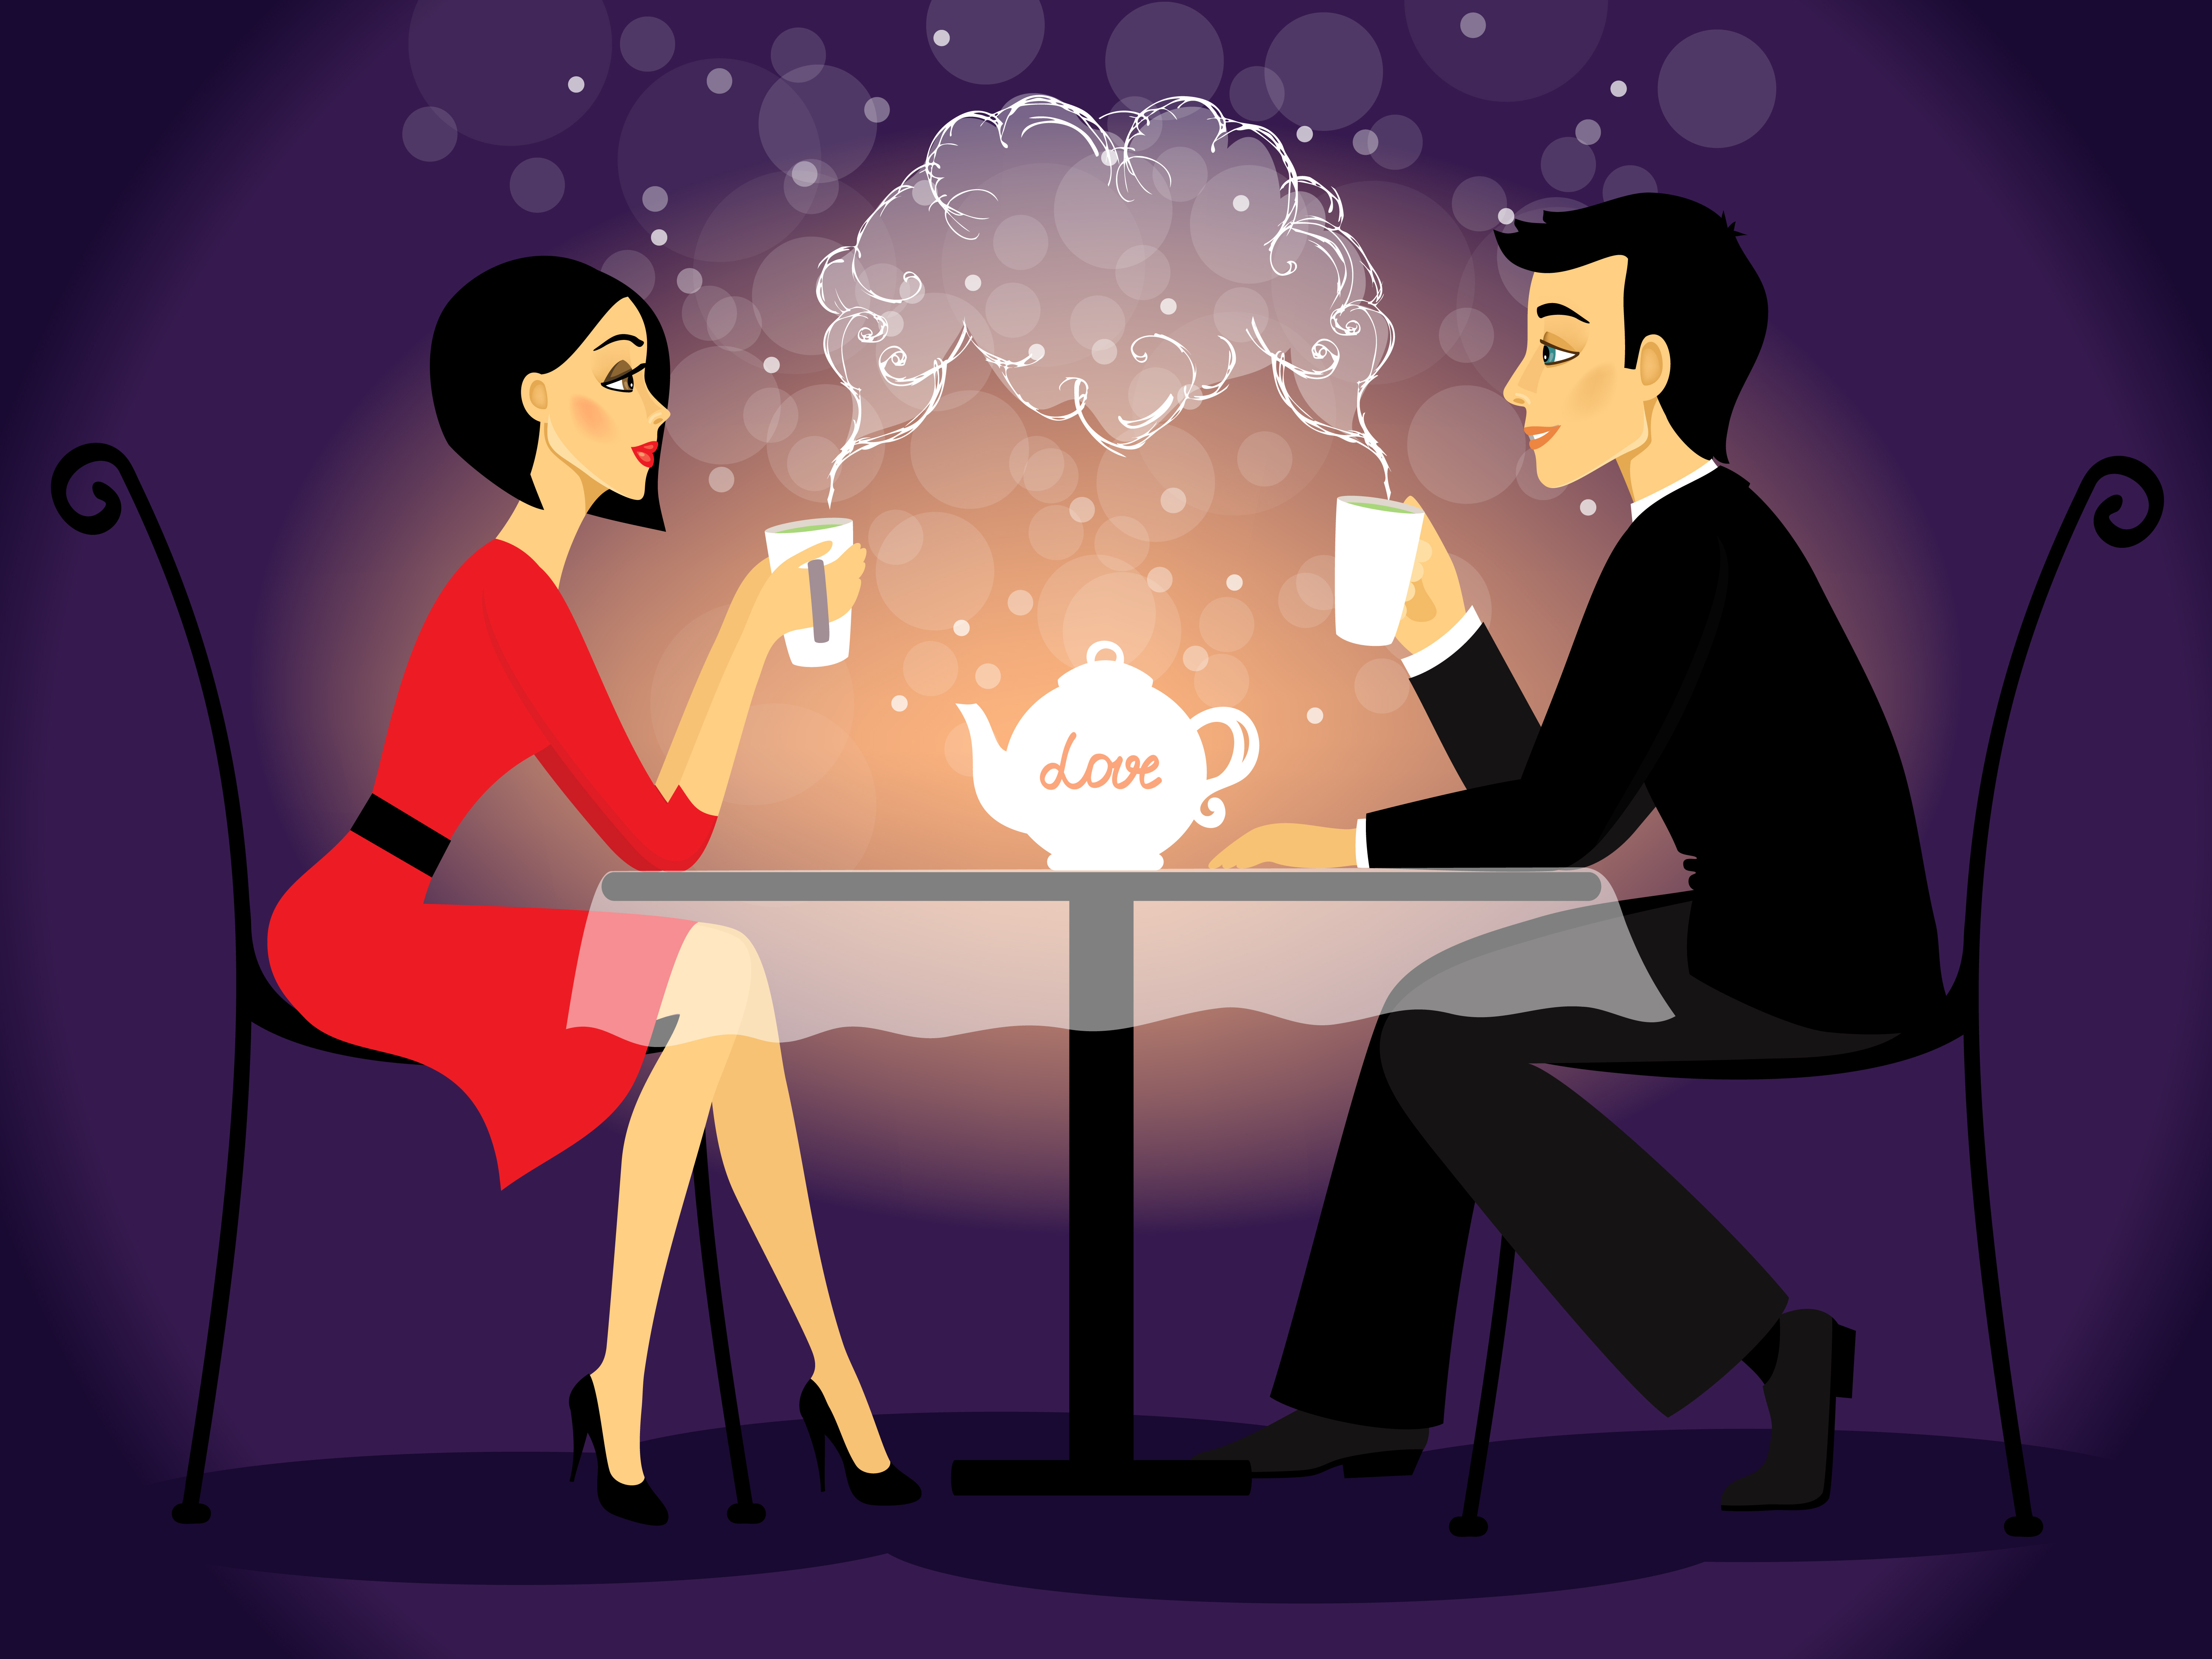 female speed dating If you have never heard of online speed dating, it works like regular speed dating basically, you login into the site during a specific time and spend about 8 minutes or so chatting with a female then you move on and start talking to a different woman now online speed dating differs from offline.